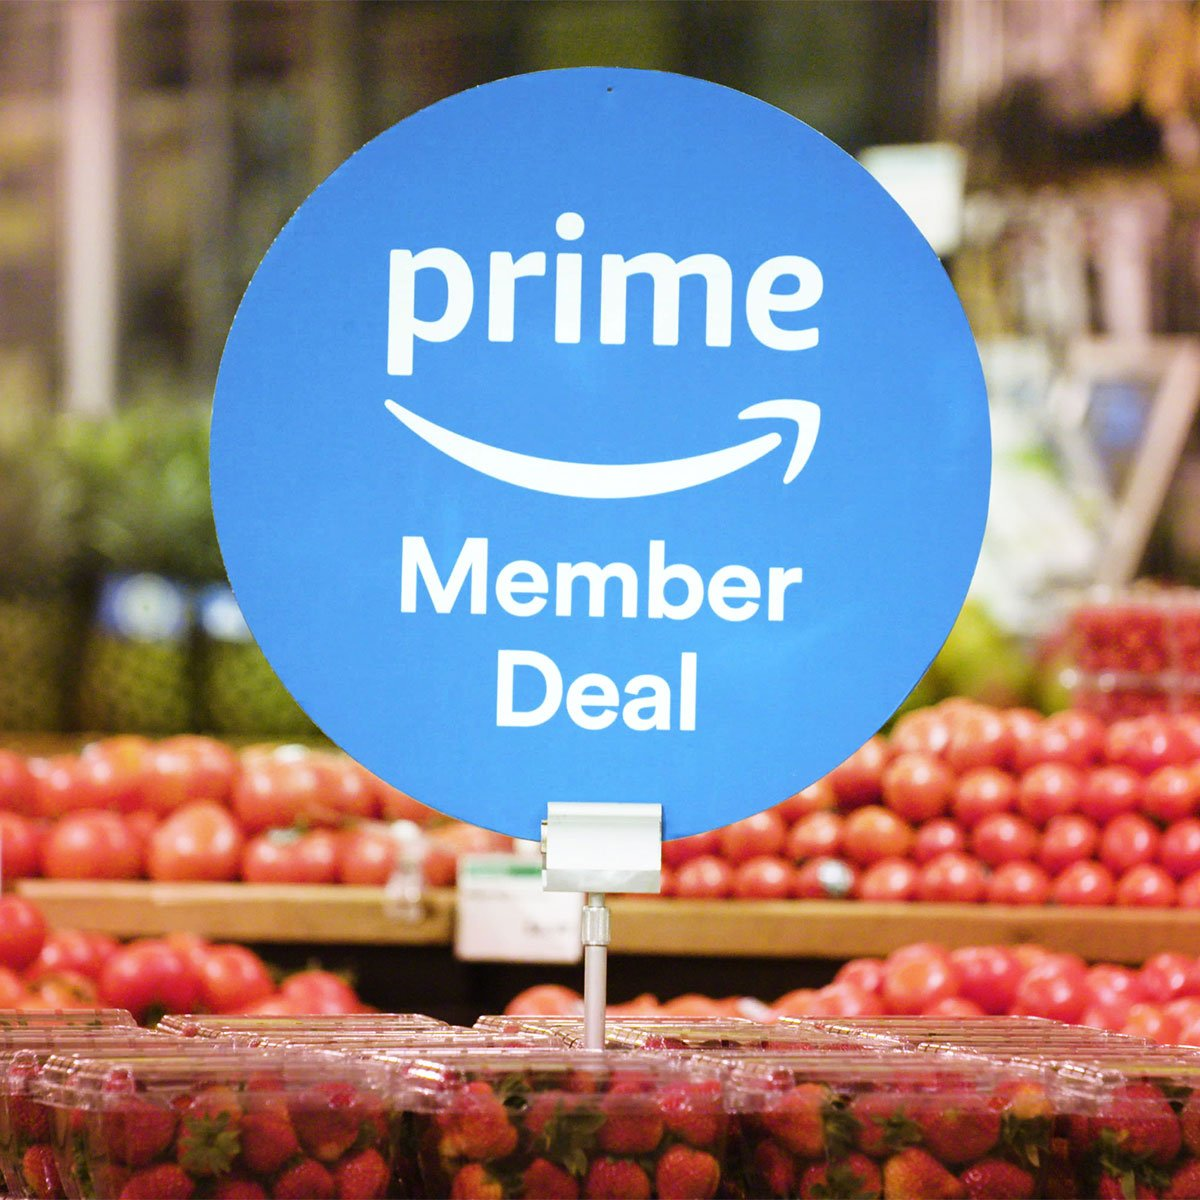 New Benefit For Prime Members At Whole Foods Market